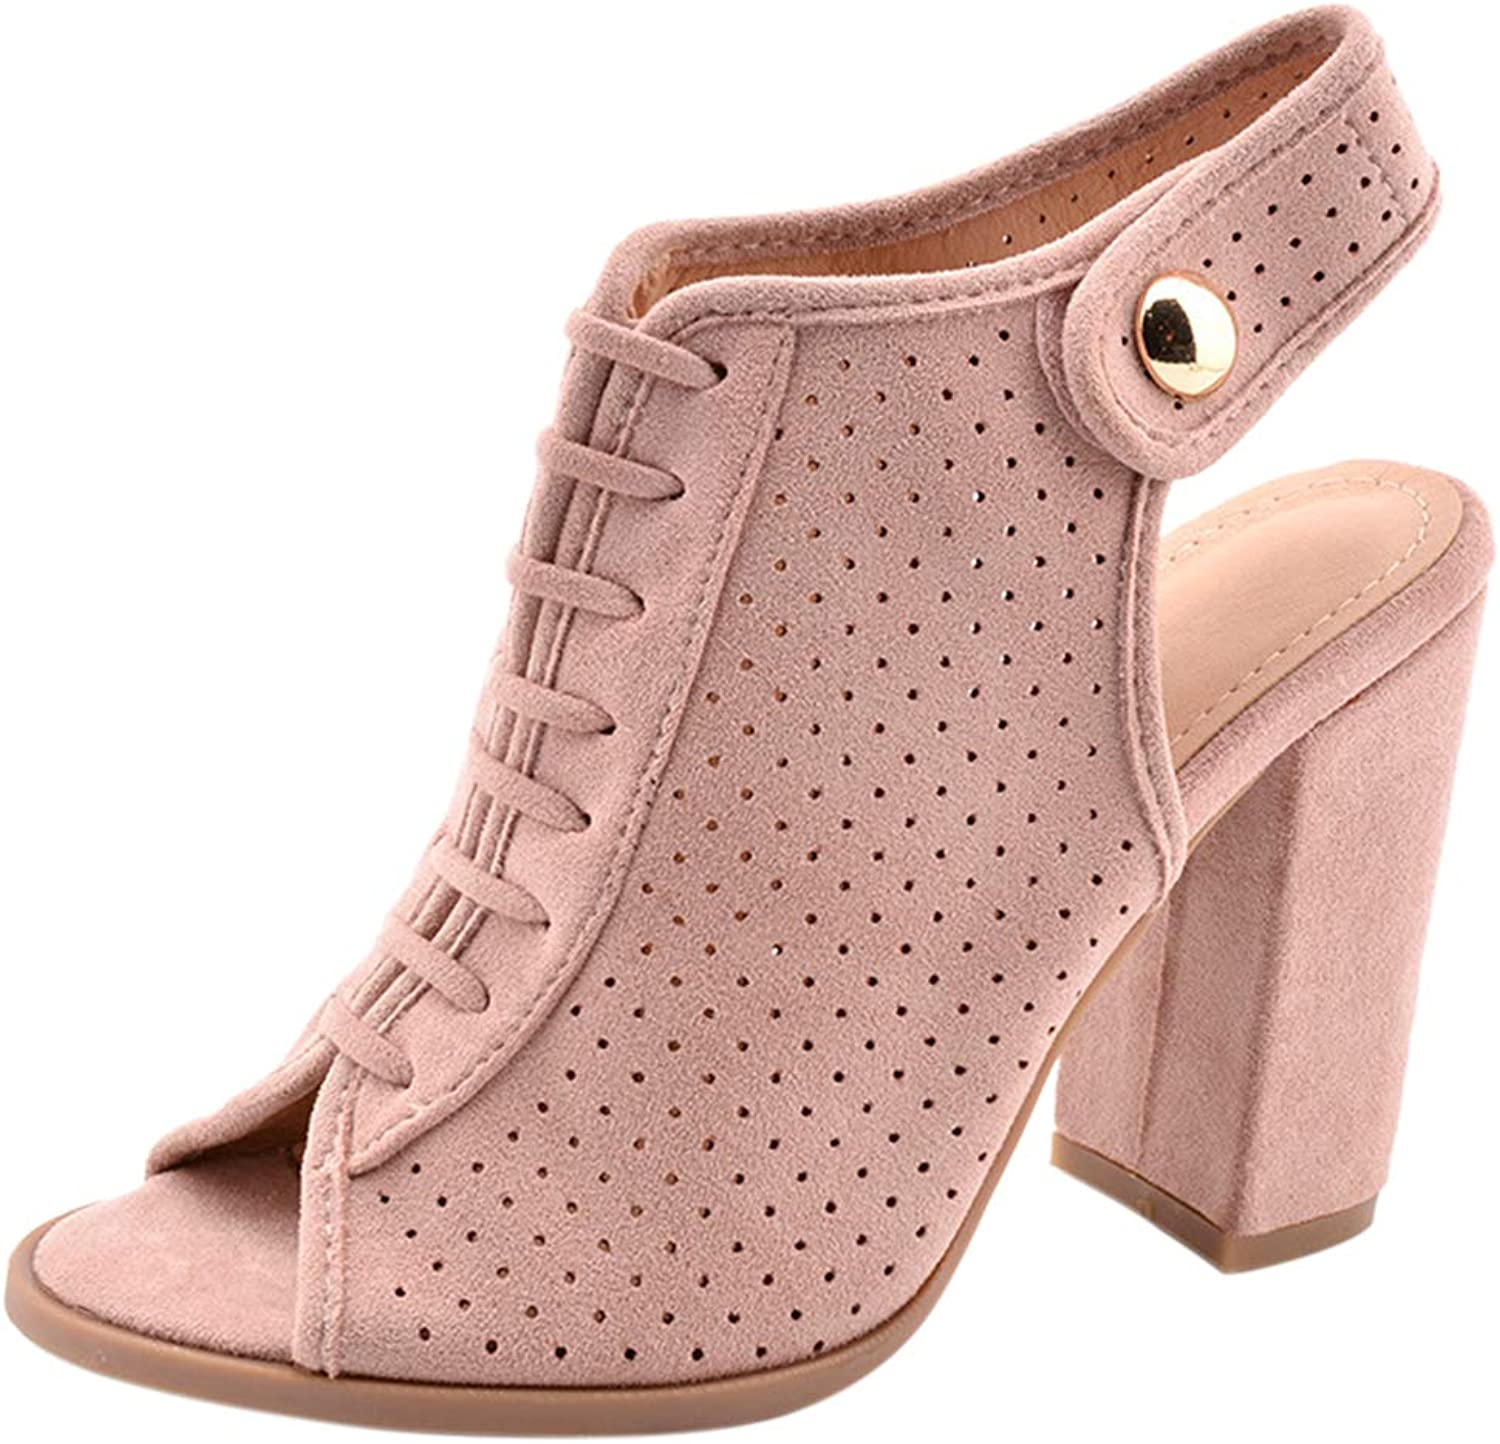 BIGTREE Womens Peep-Toe Chunky Block-Heeled Button Ankle-Bootie